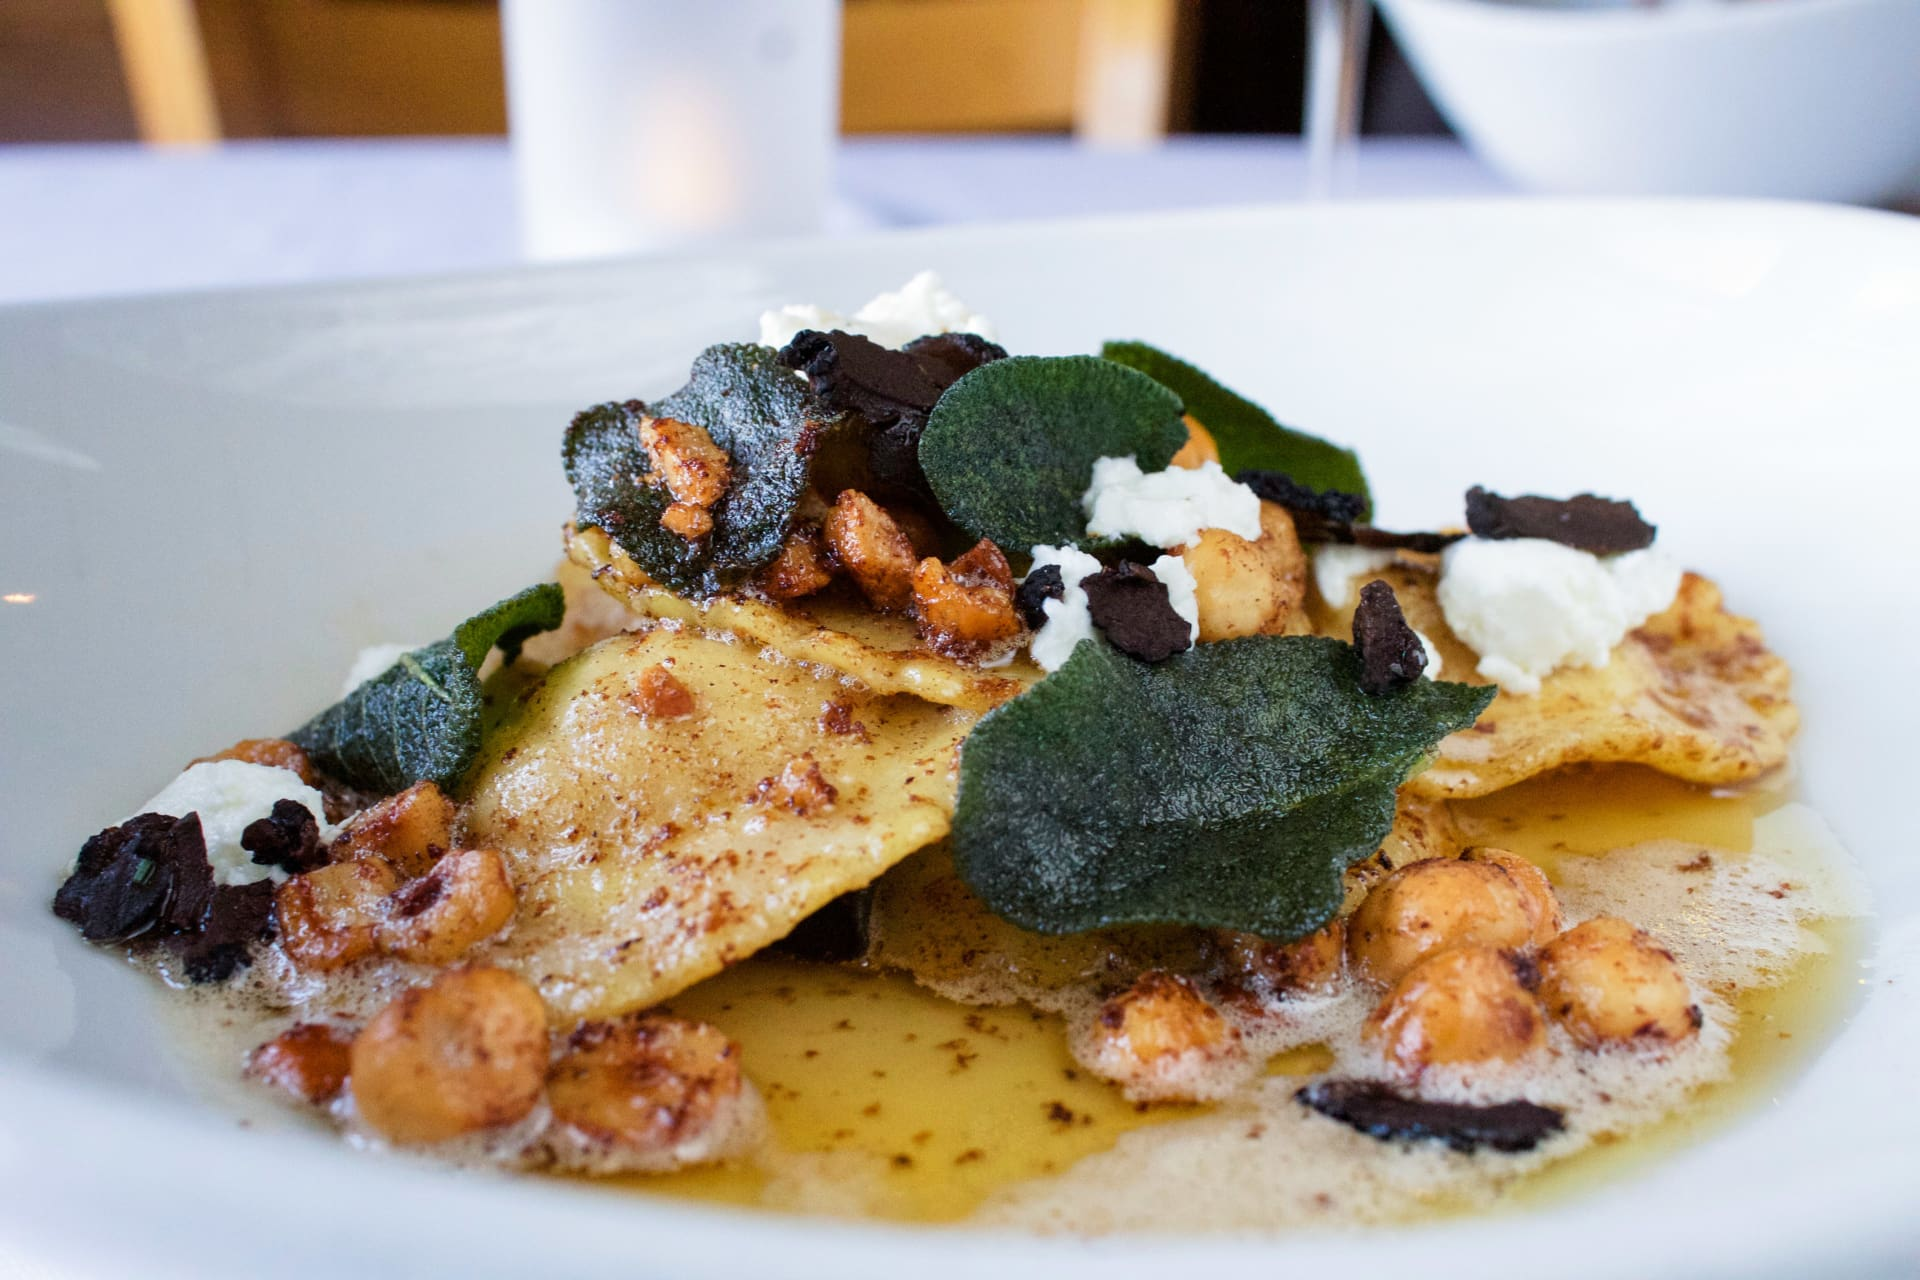 House Made Kabocha Squash Ravioli